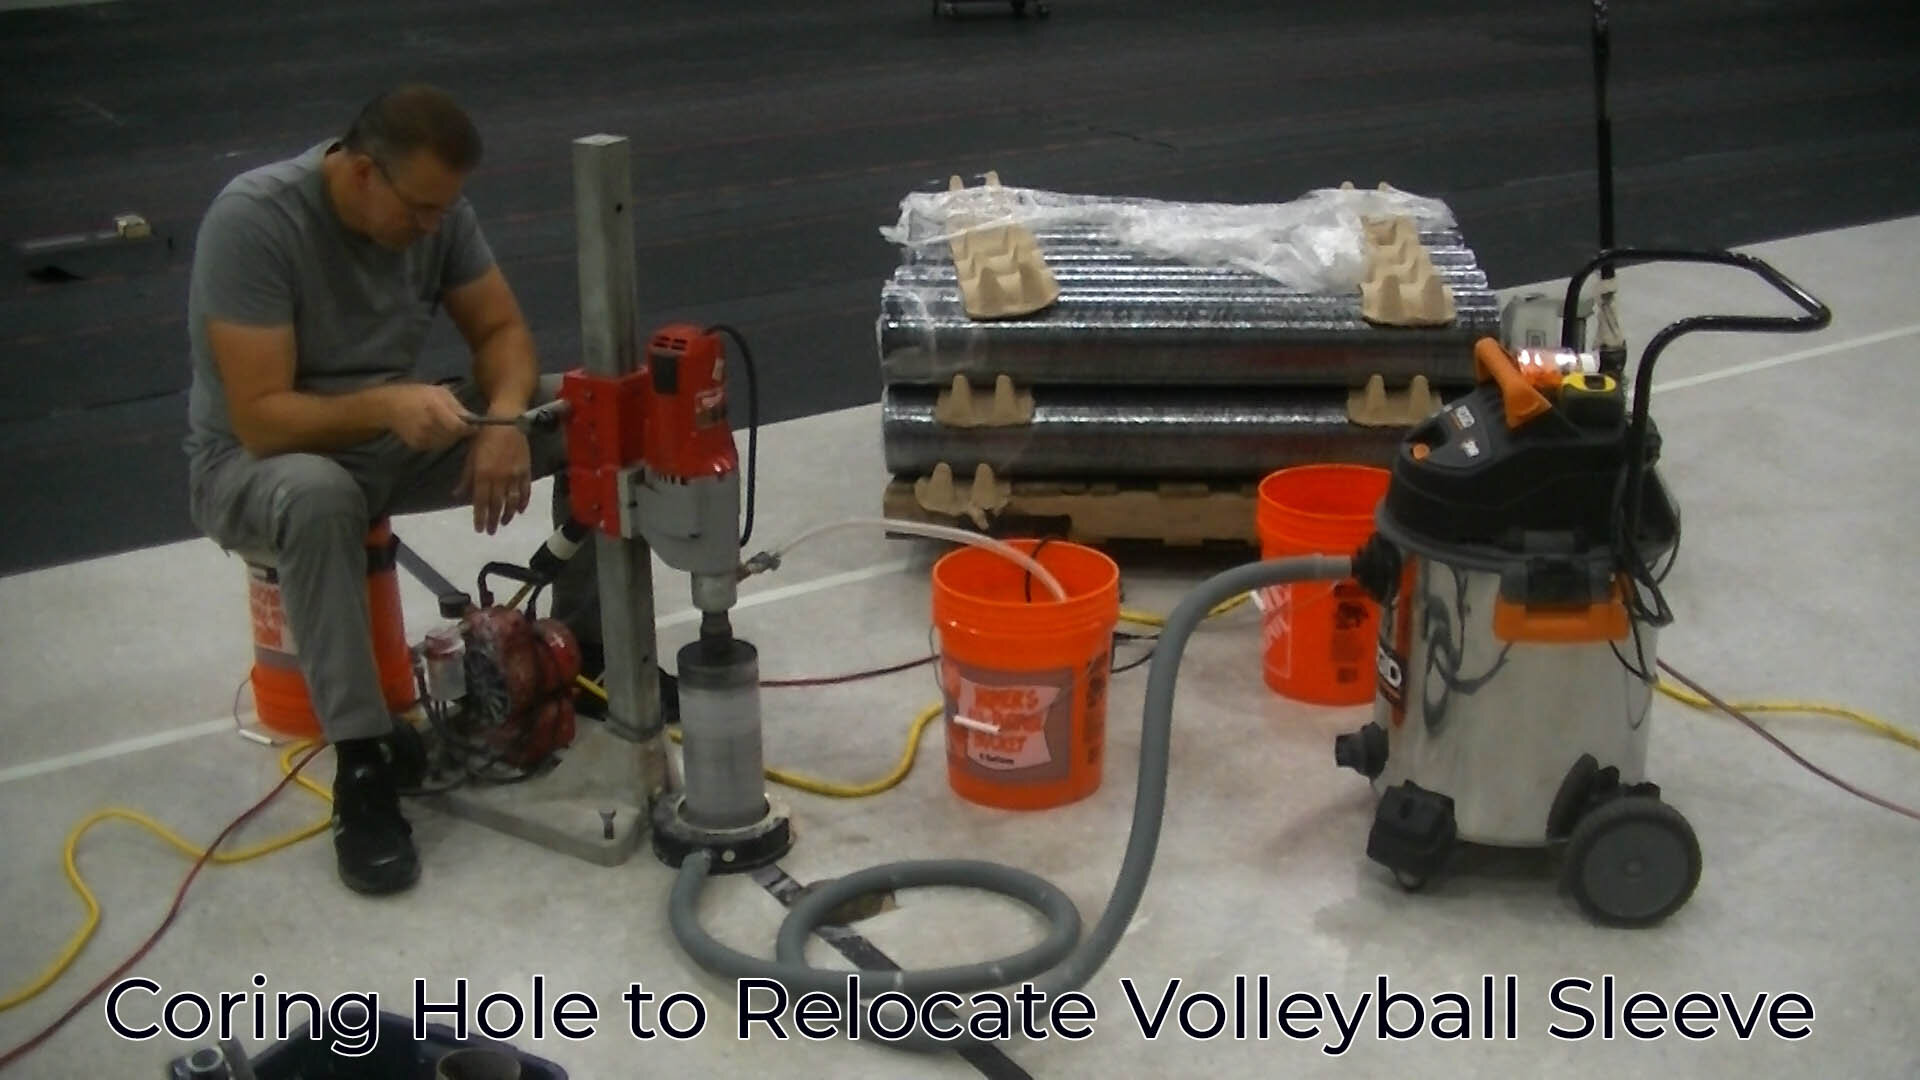 Coring Concrete to Relocate Volleyball Sleeve